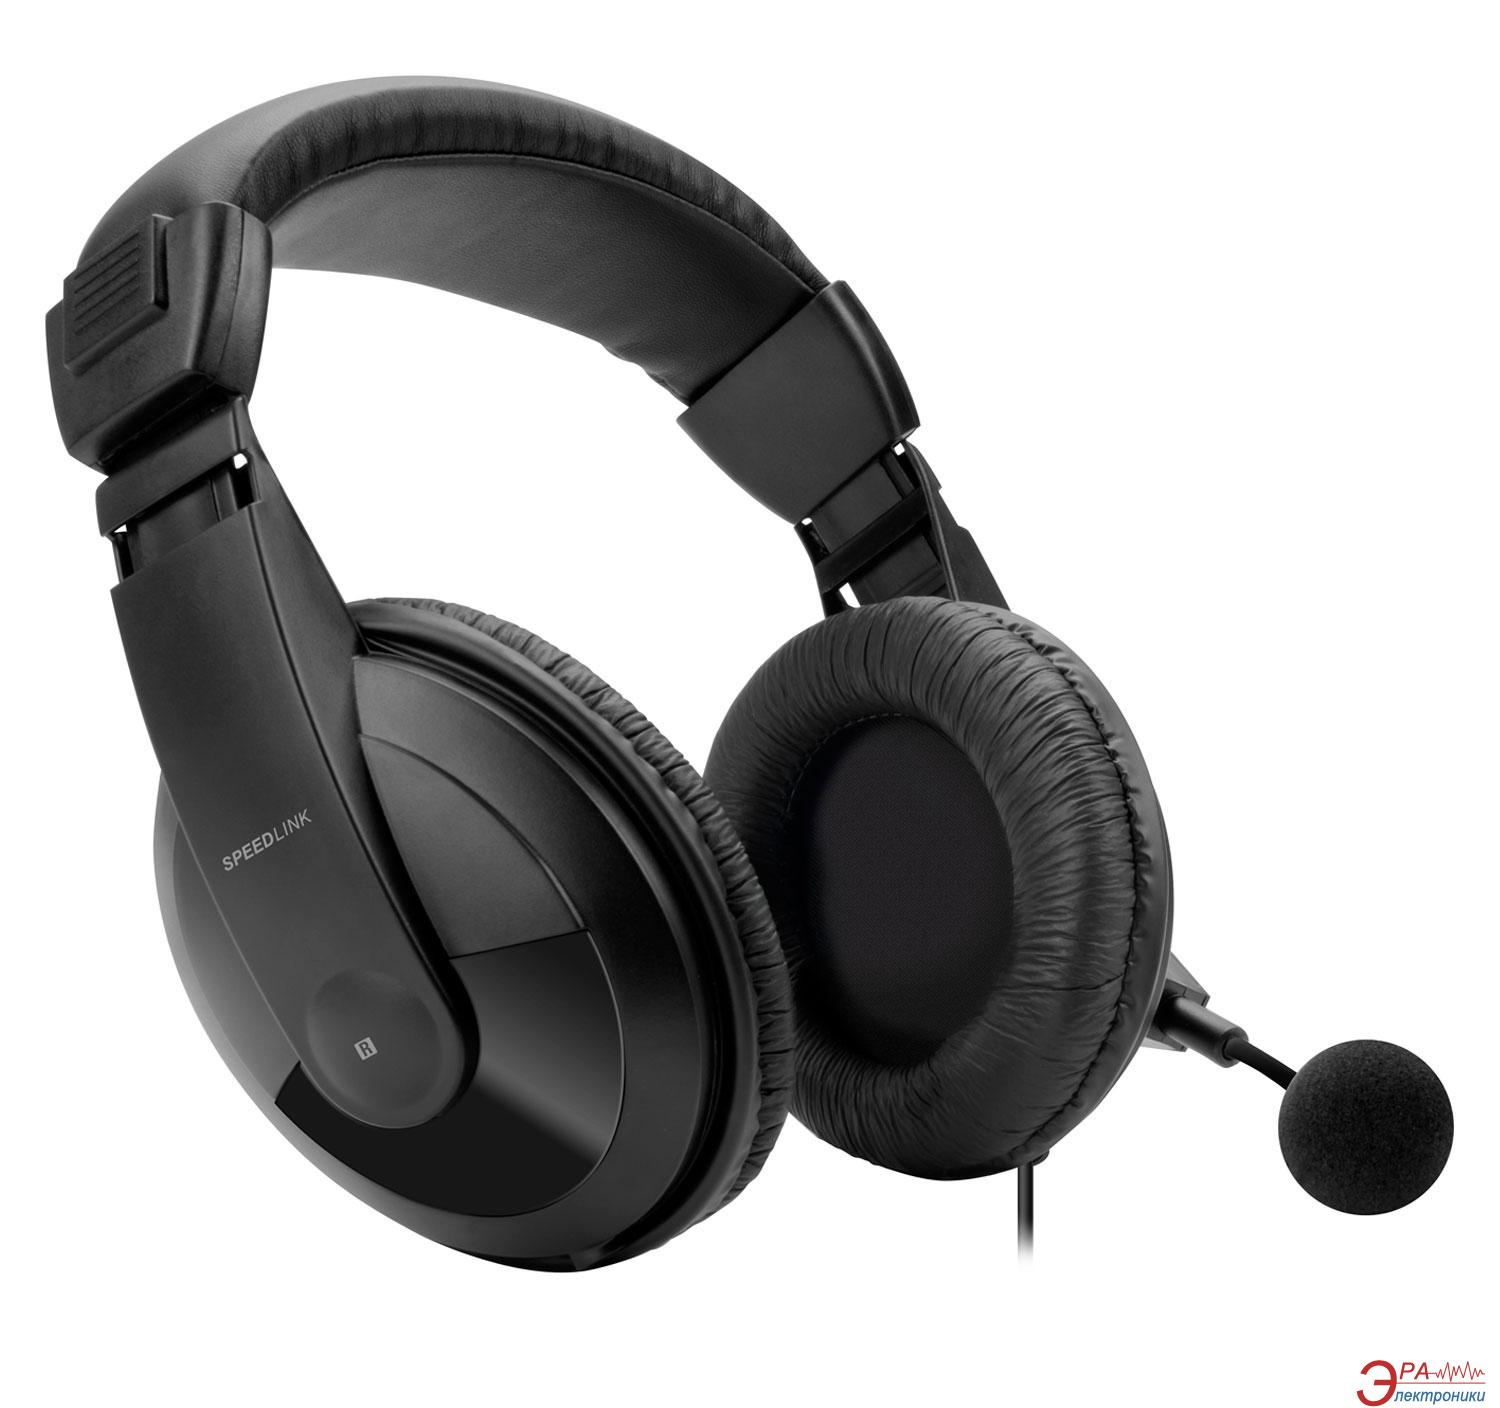 Гарнитура Speed Link Tenuri Stereo Headset PS4 Black (SL-4531-BK)